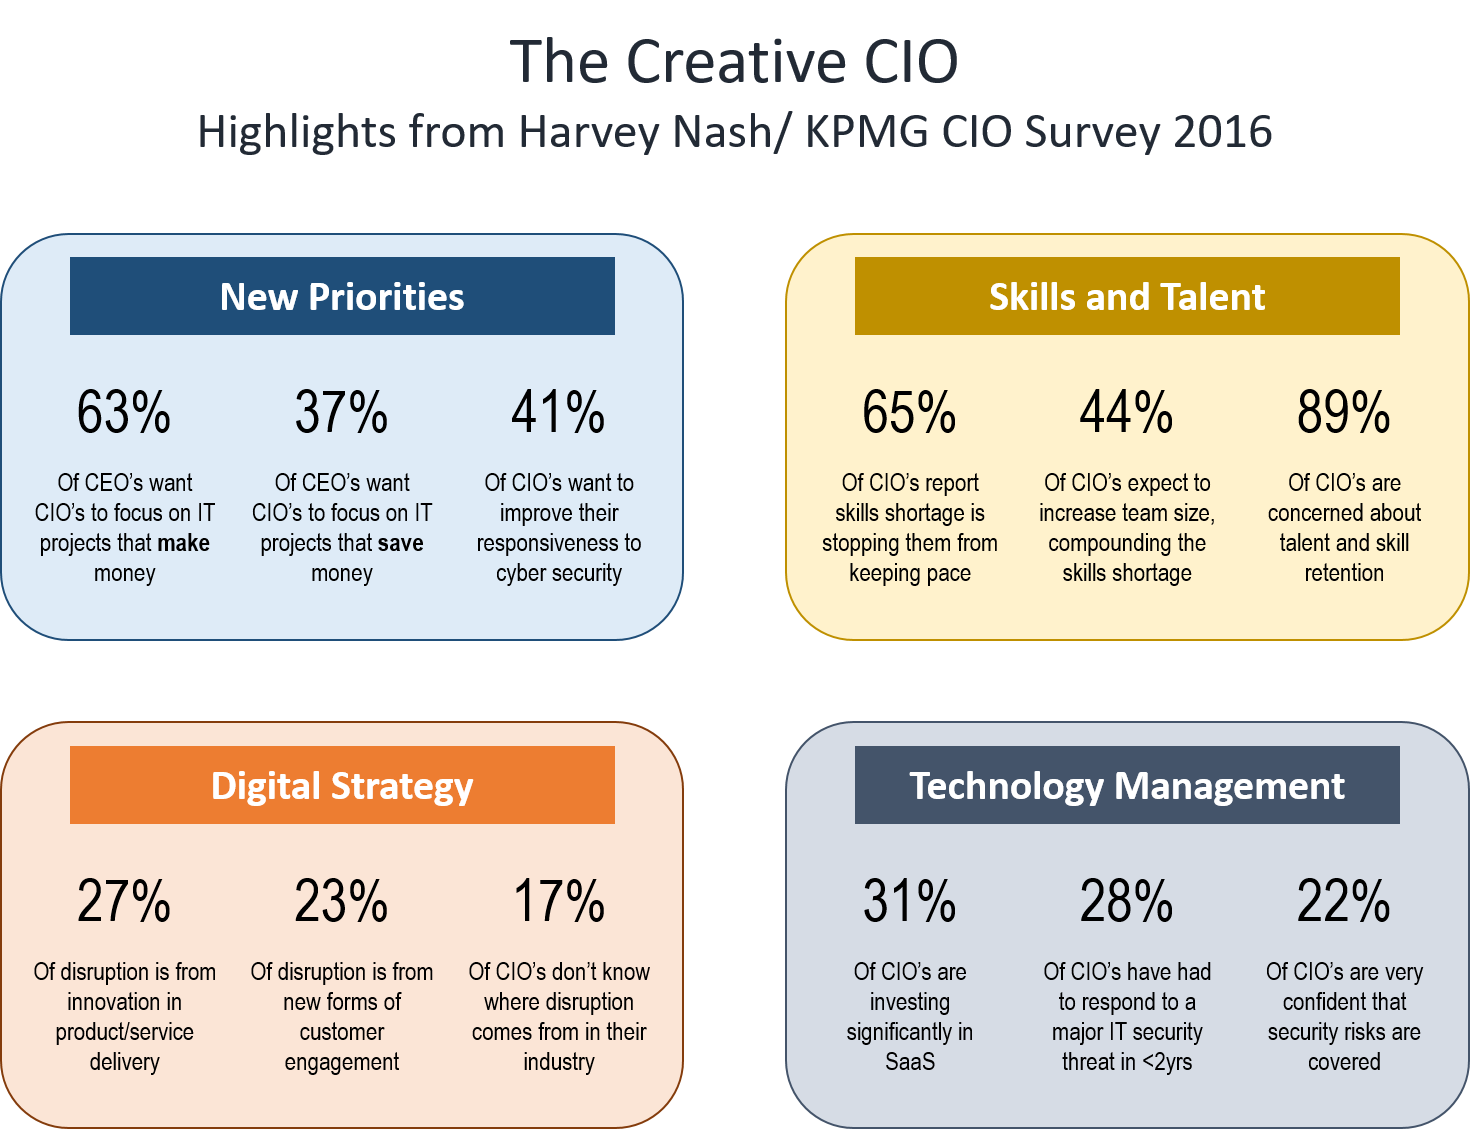 "Figure 2: Selected highlights from the Harvey Nash/ KPMG CIO Survey 2016, global results from 3,353 survey respondents <sup><a href=""#References"">2</a></sup>"